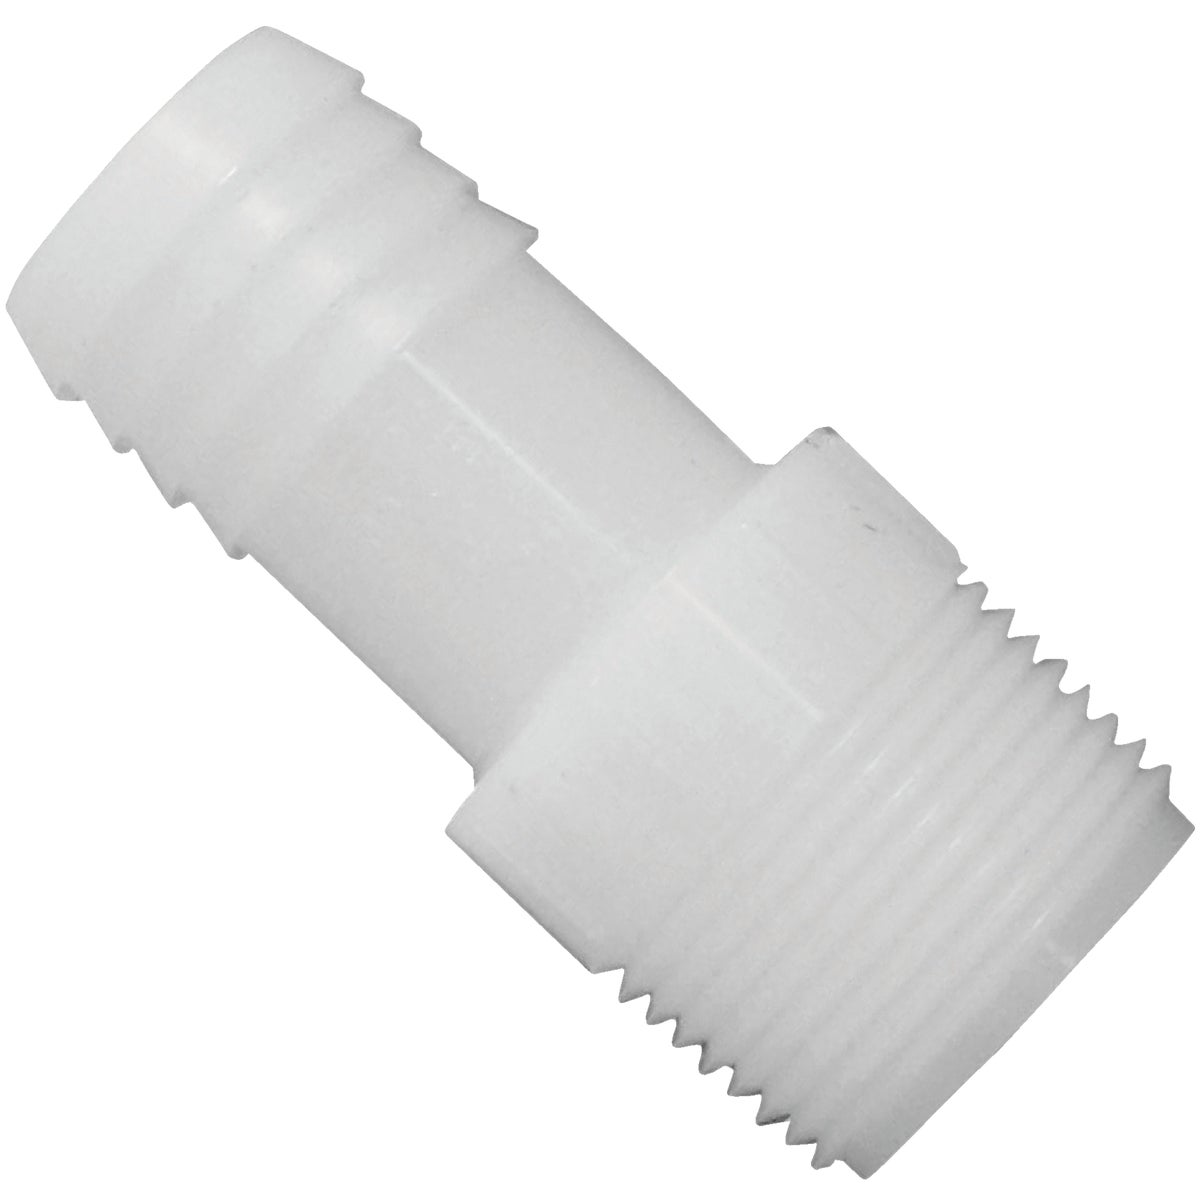 "1"" NYLON MIPXINS ADAPTER - 360410 by Genova Inc"